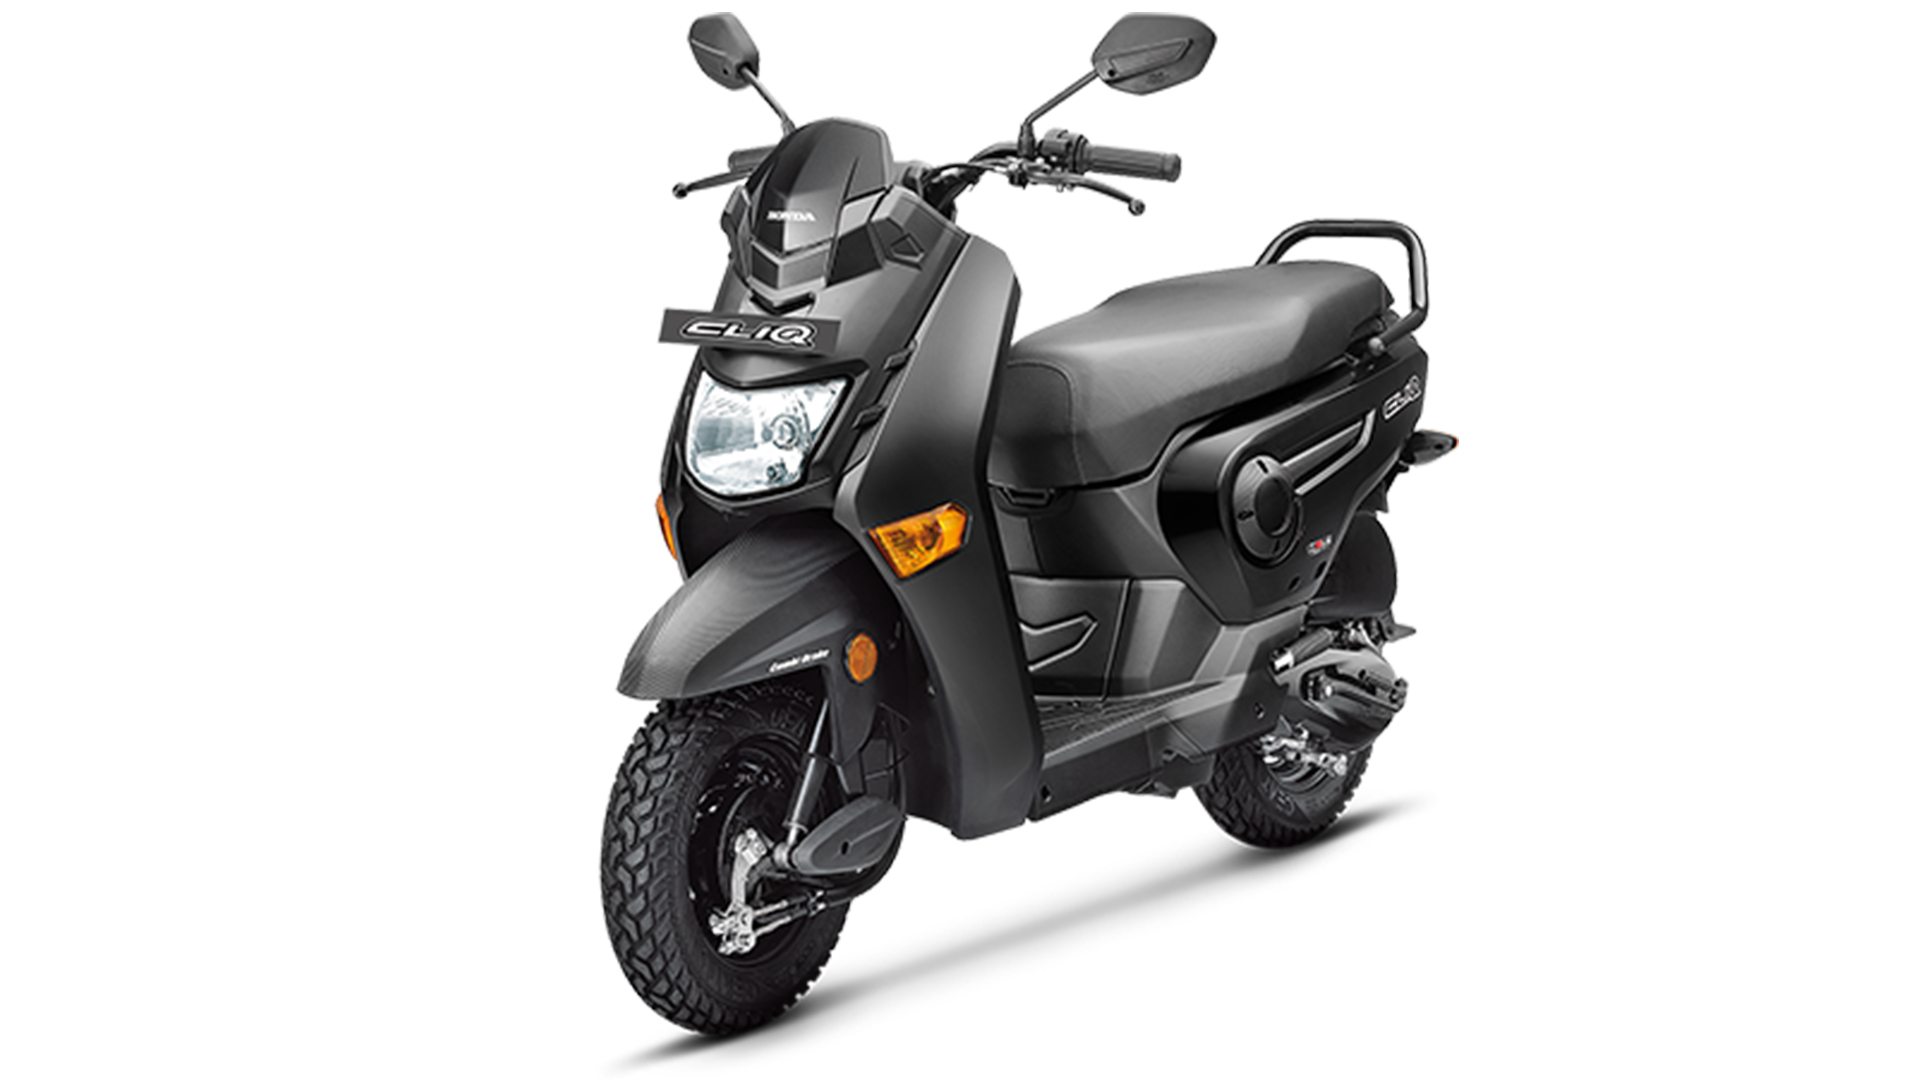 Honda Cliq 2017 Price Mileage Reviews Specification